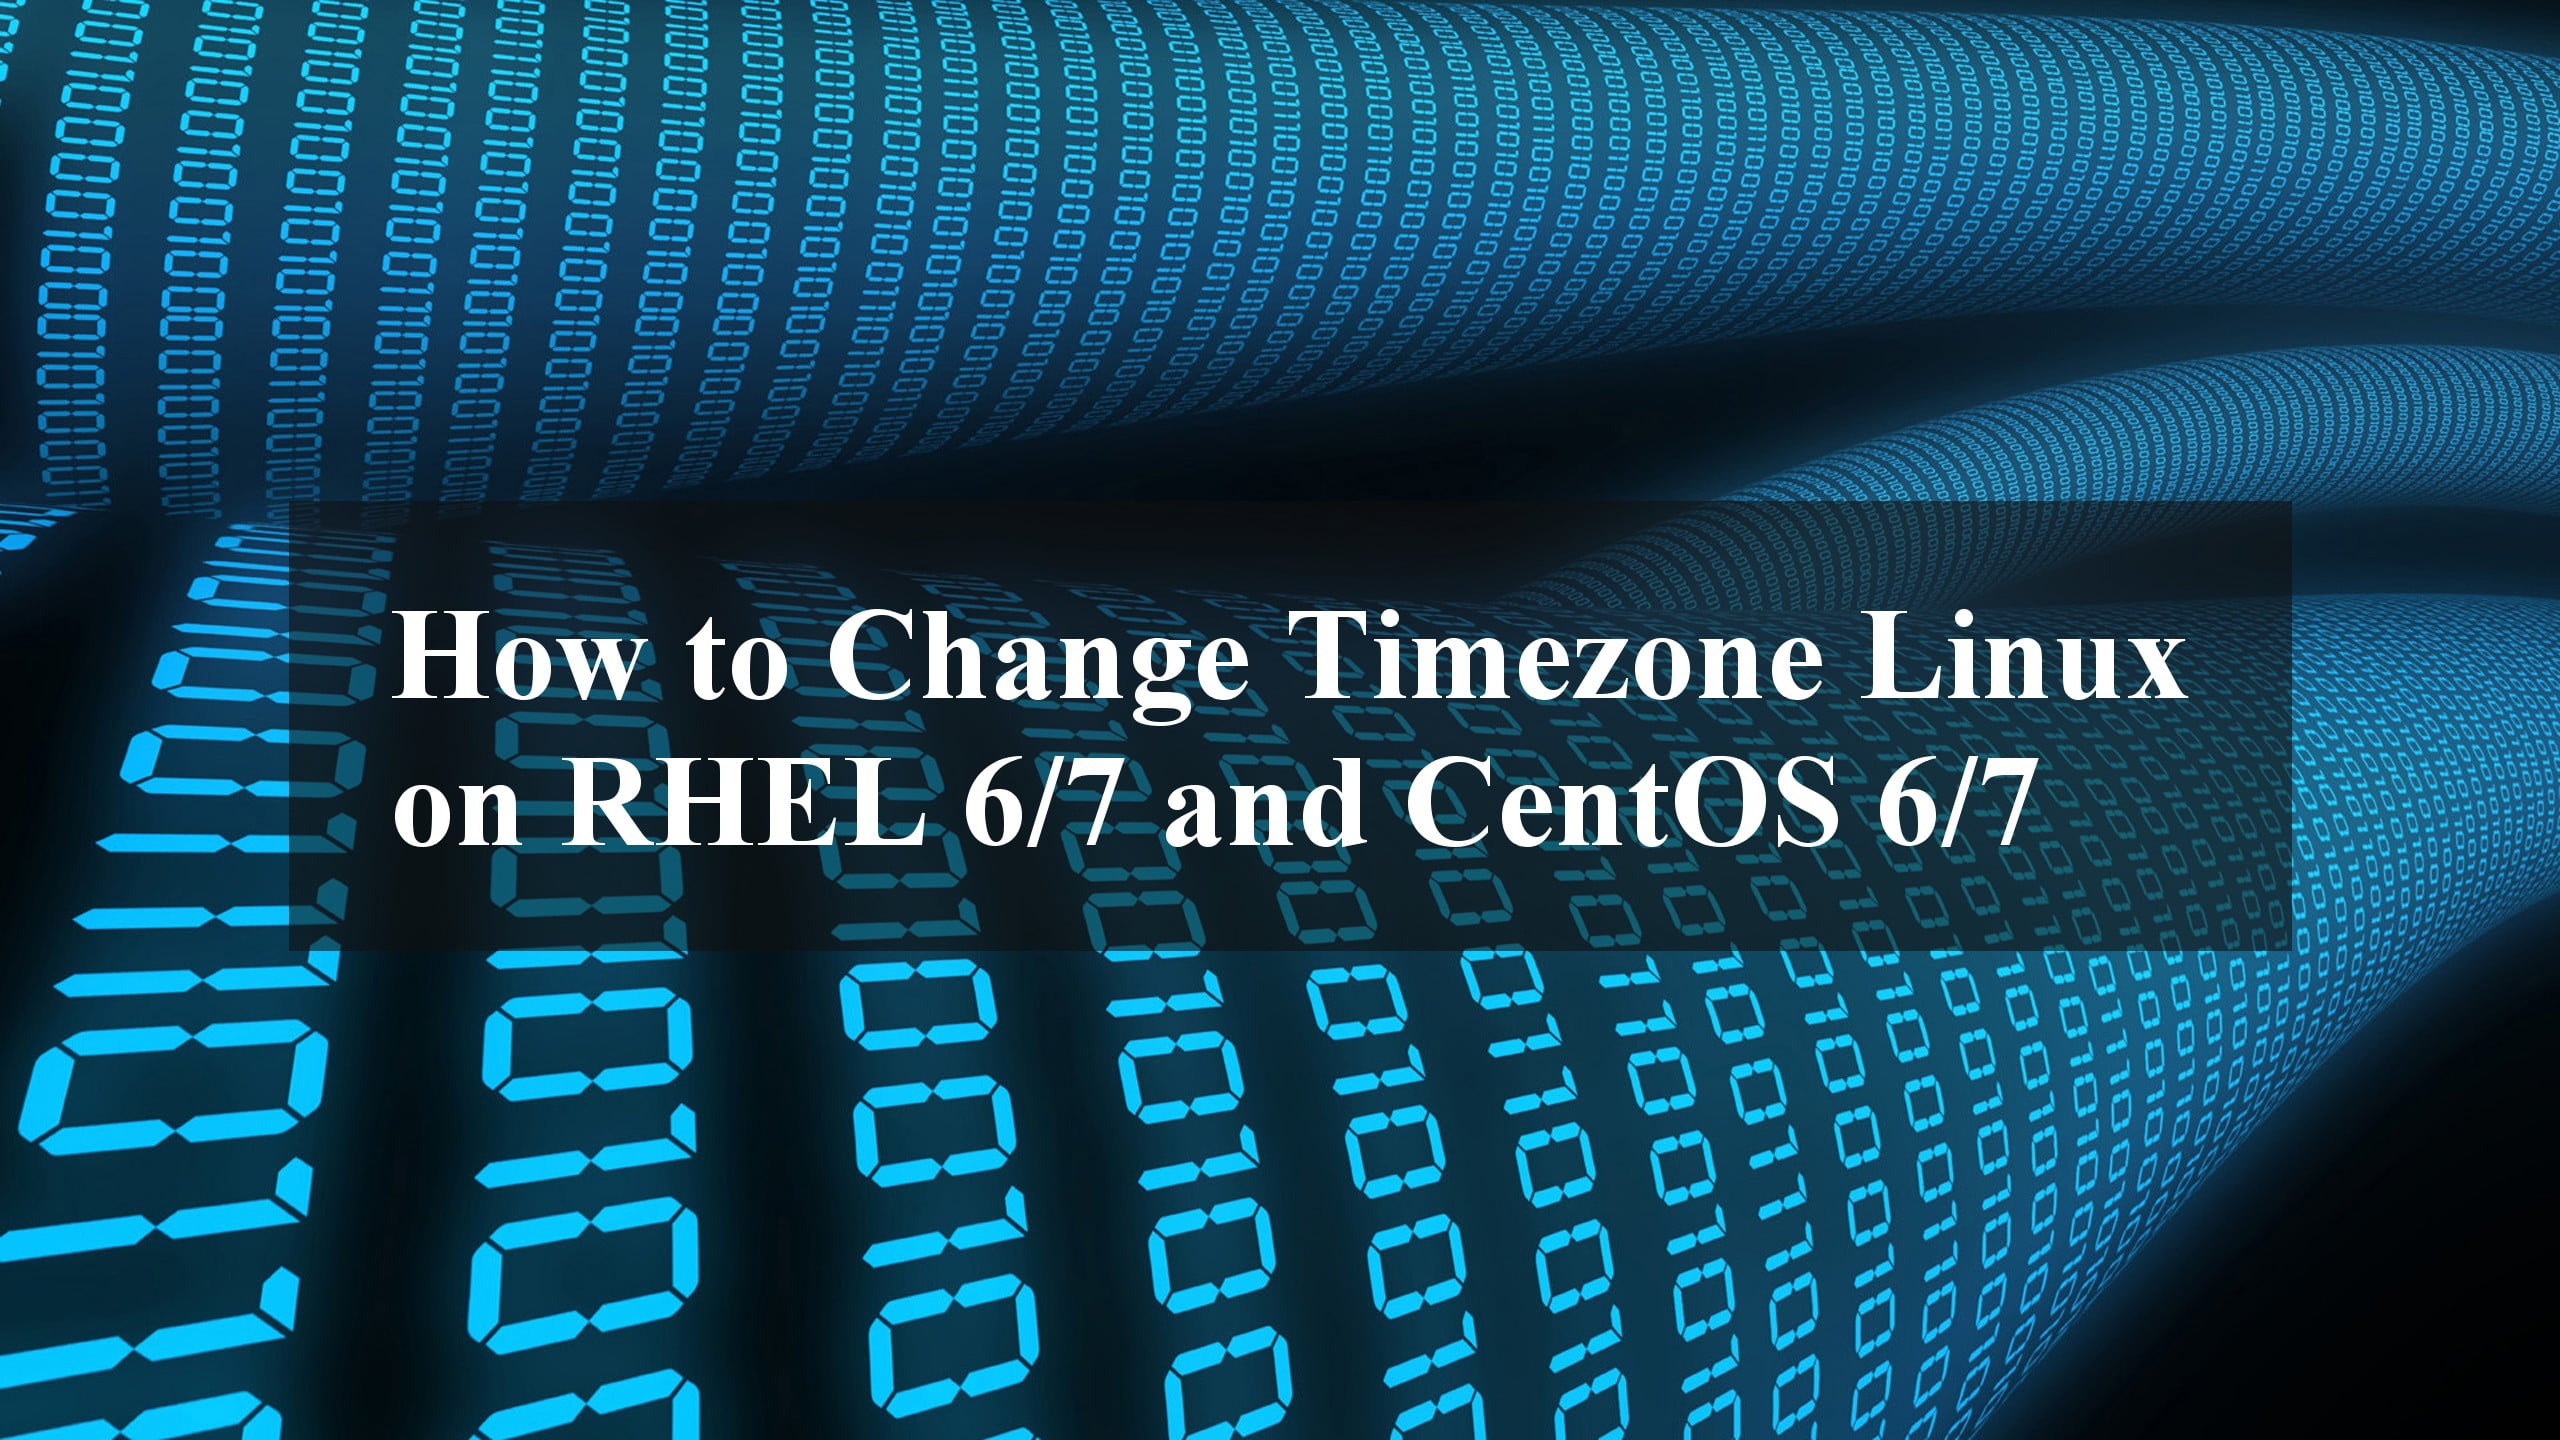 How to Change Timezone Linux on RHEL 6/7 and CentOS 6/7